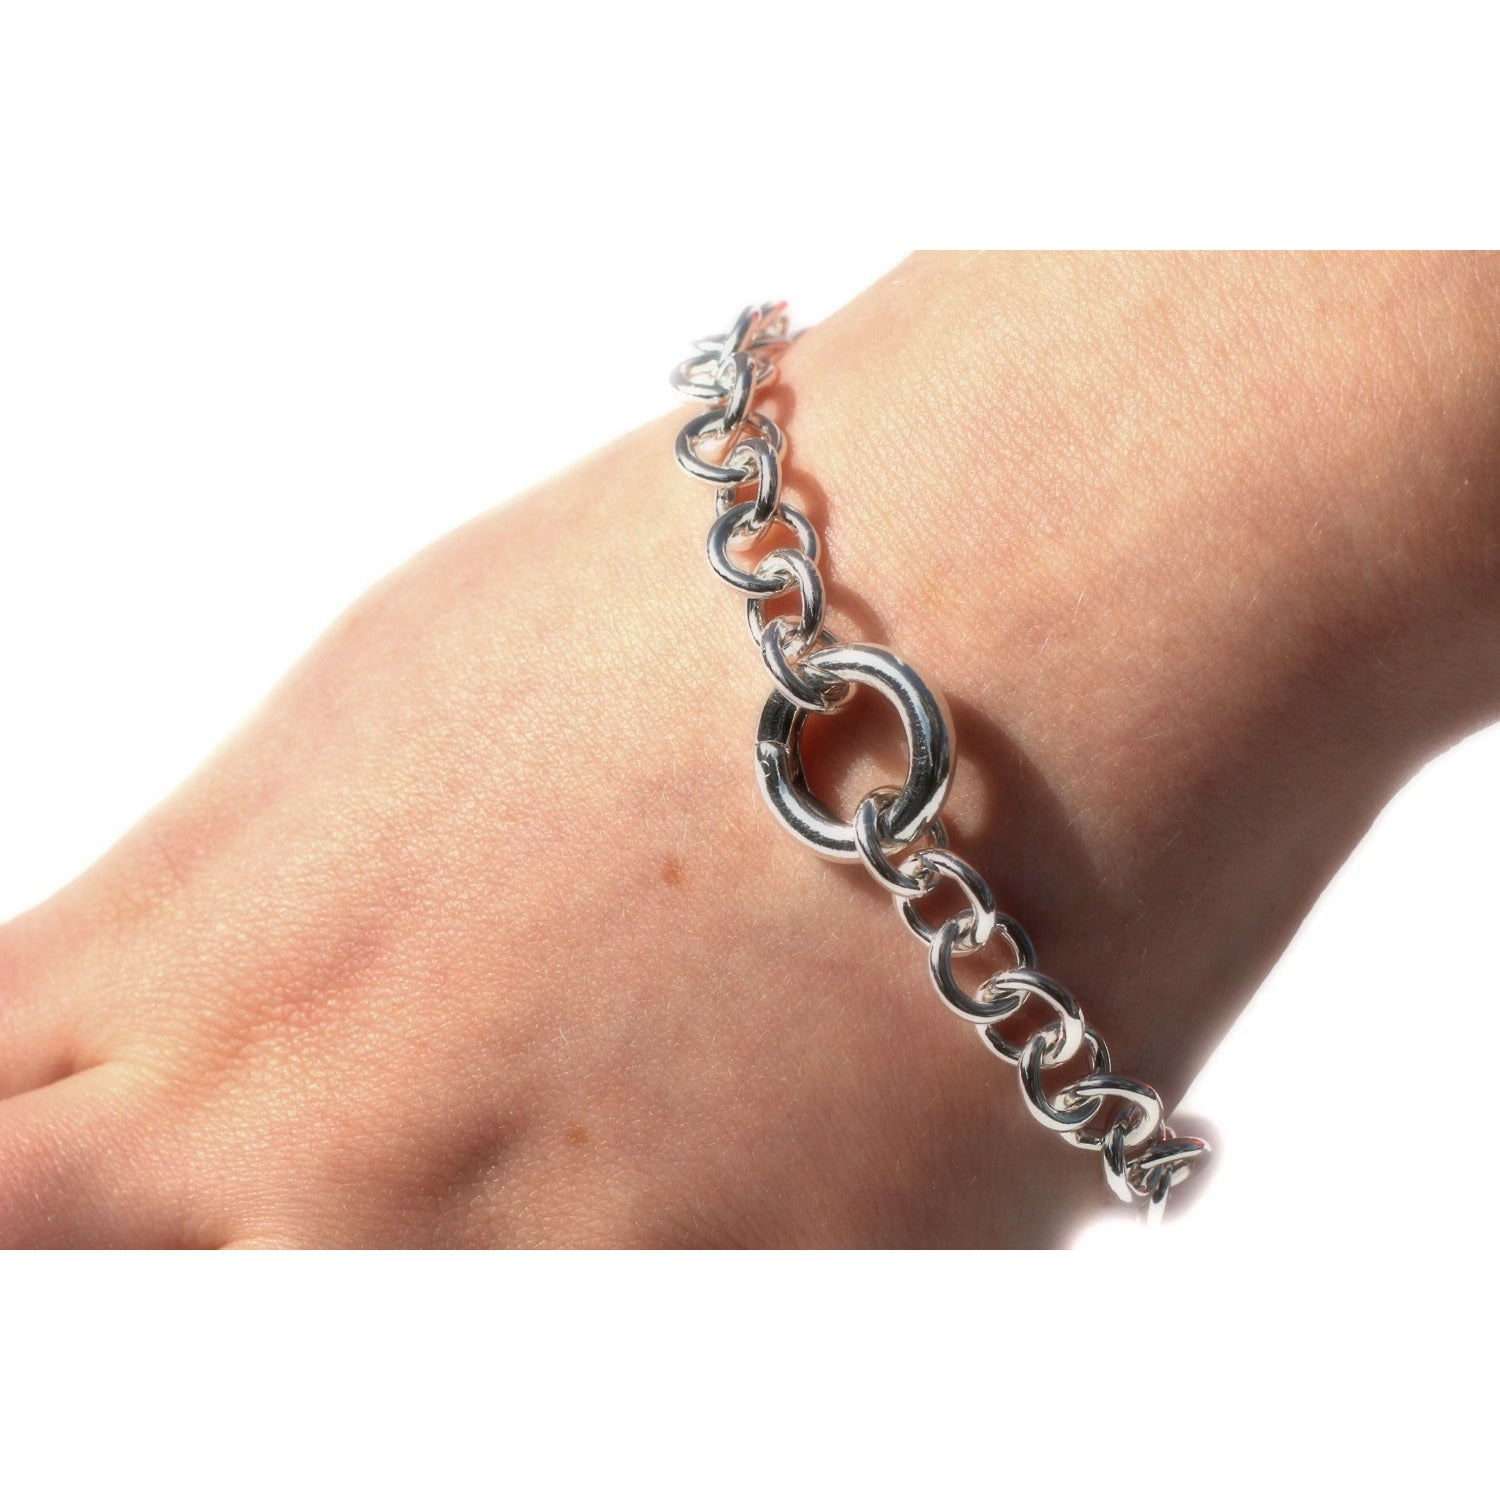 DISCREET DAY COLLAR BDSM HEAVY CHAIN BRACELET STERLING SILVER.